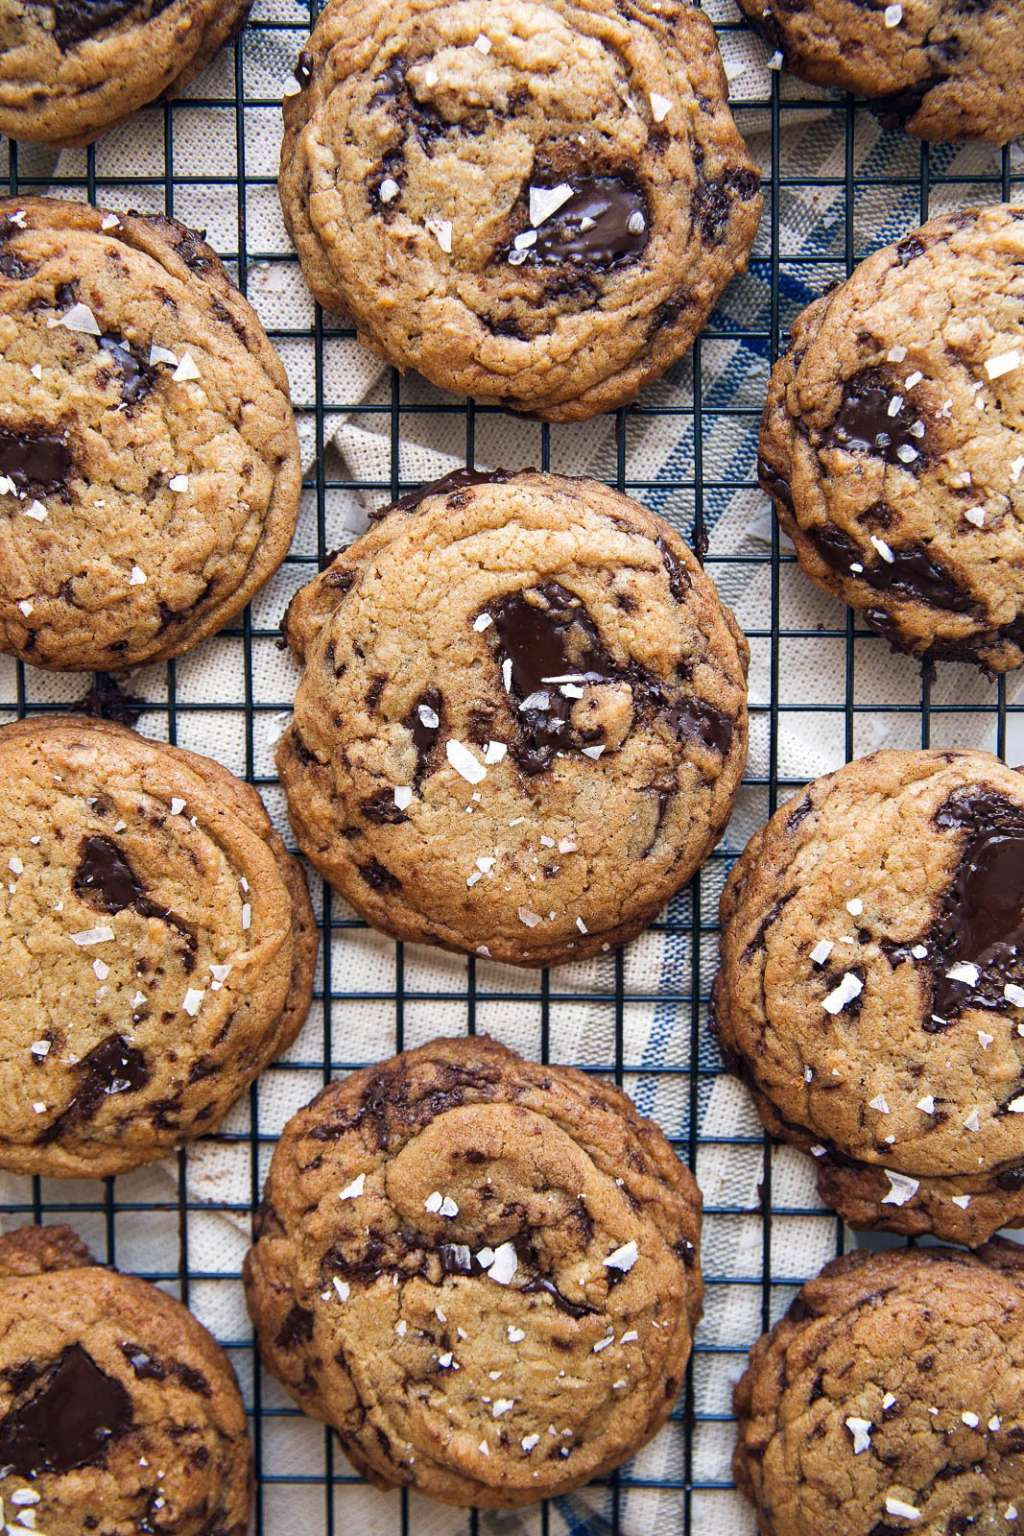 The Key to More Flavorful Chocolate Chip Cookies